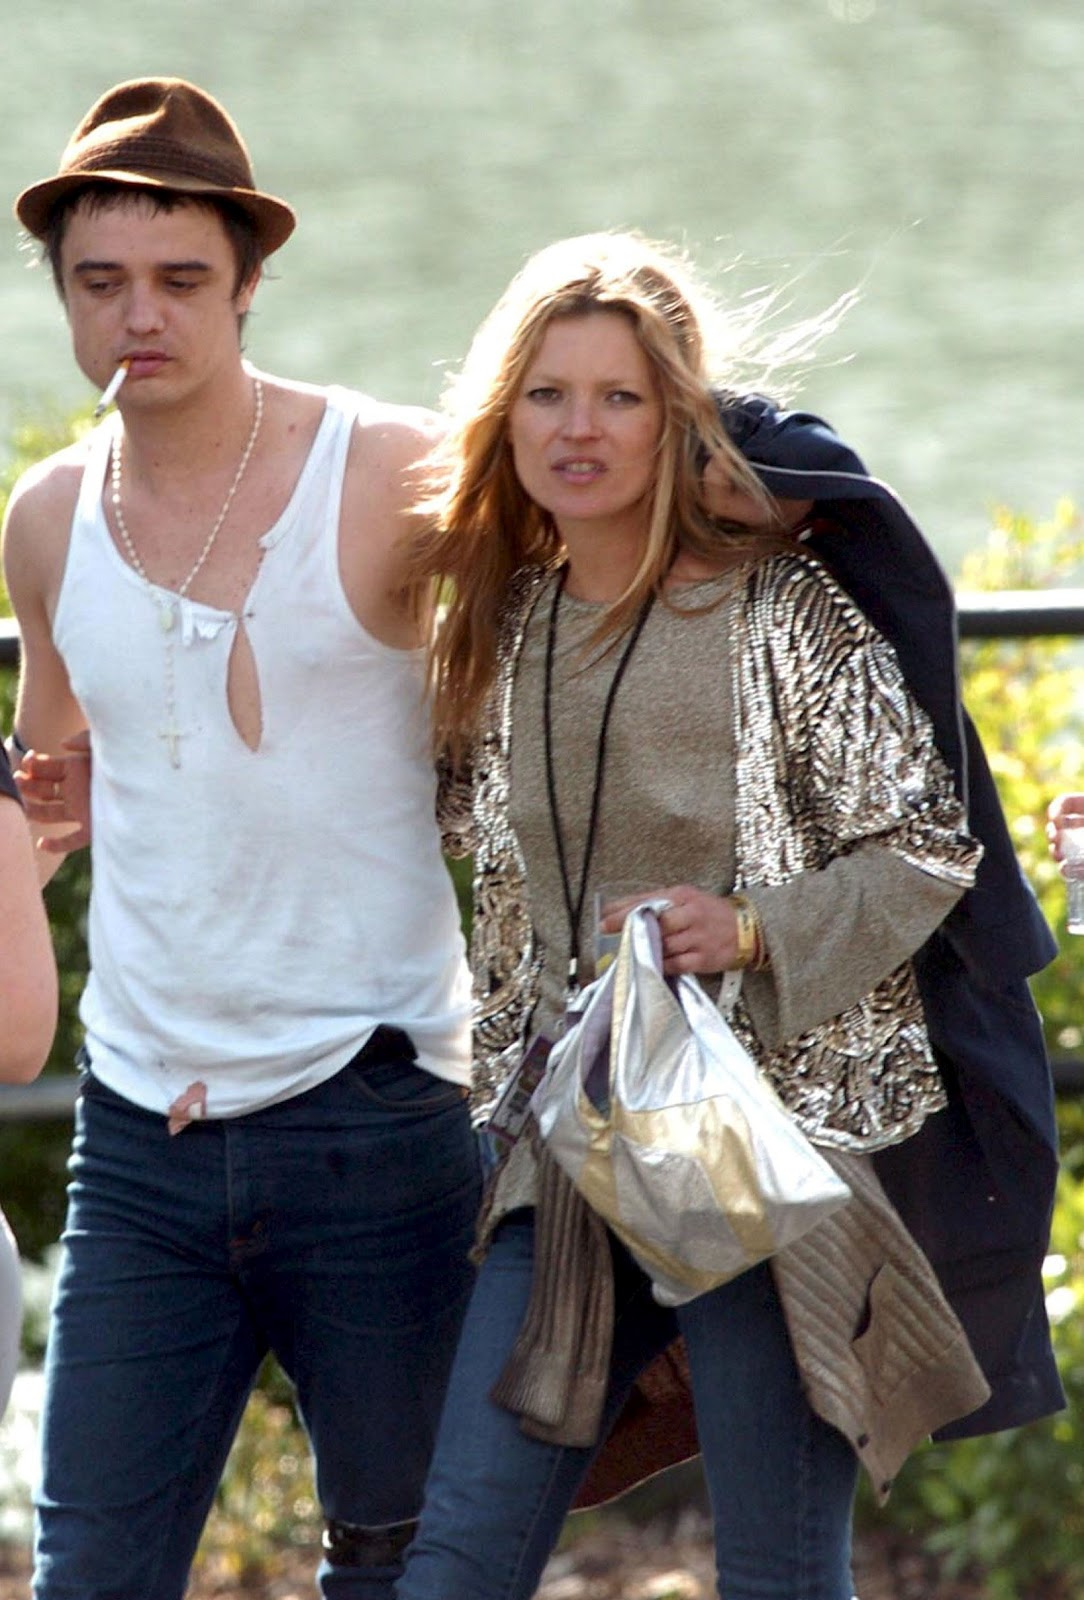 Kate moss pete doherty age difference dating 7